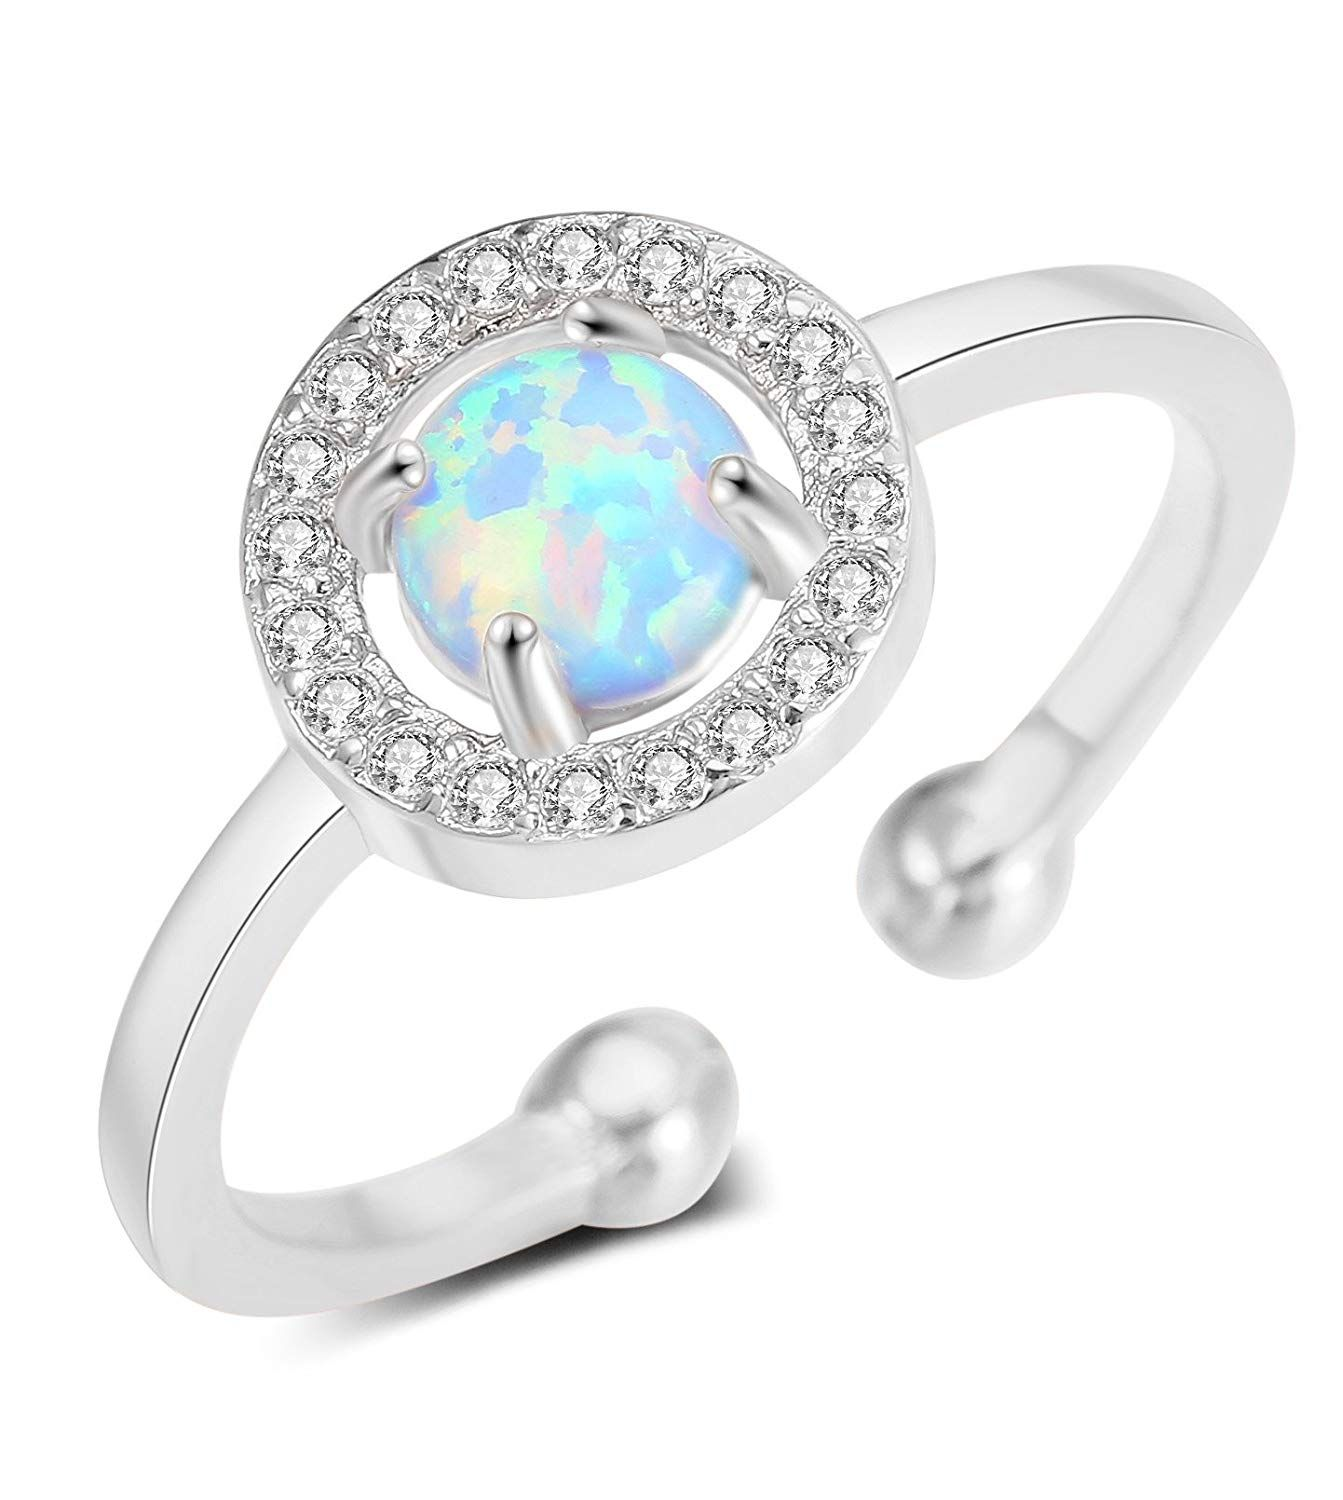 99c4169b2208c Hanpabum Cute CZ and Opal Rings for Women Teen Girls Gold and Rose ...